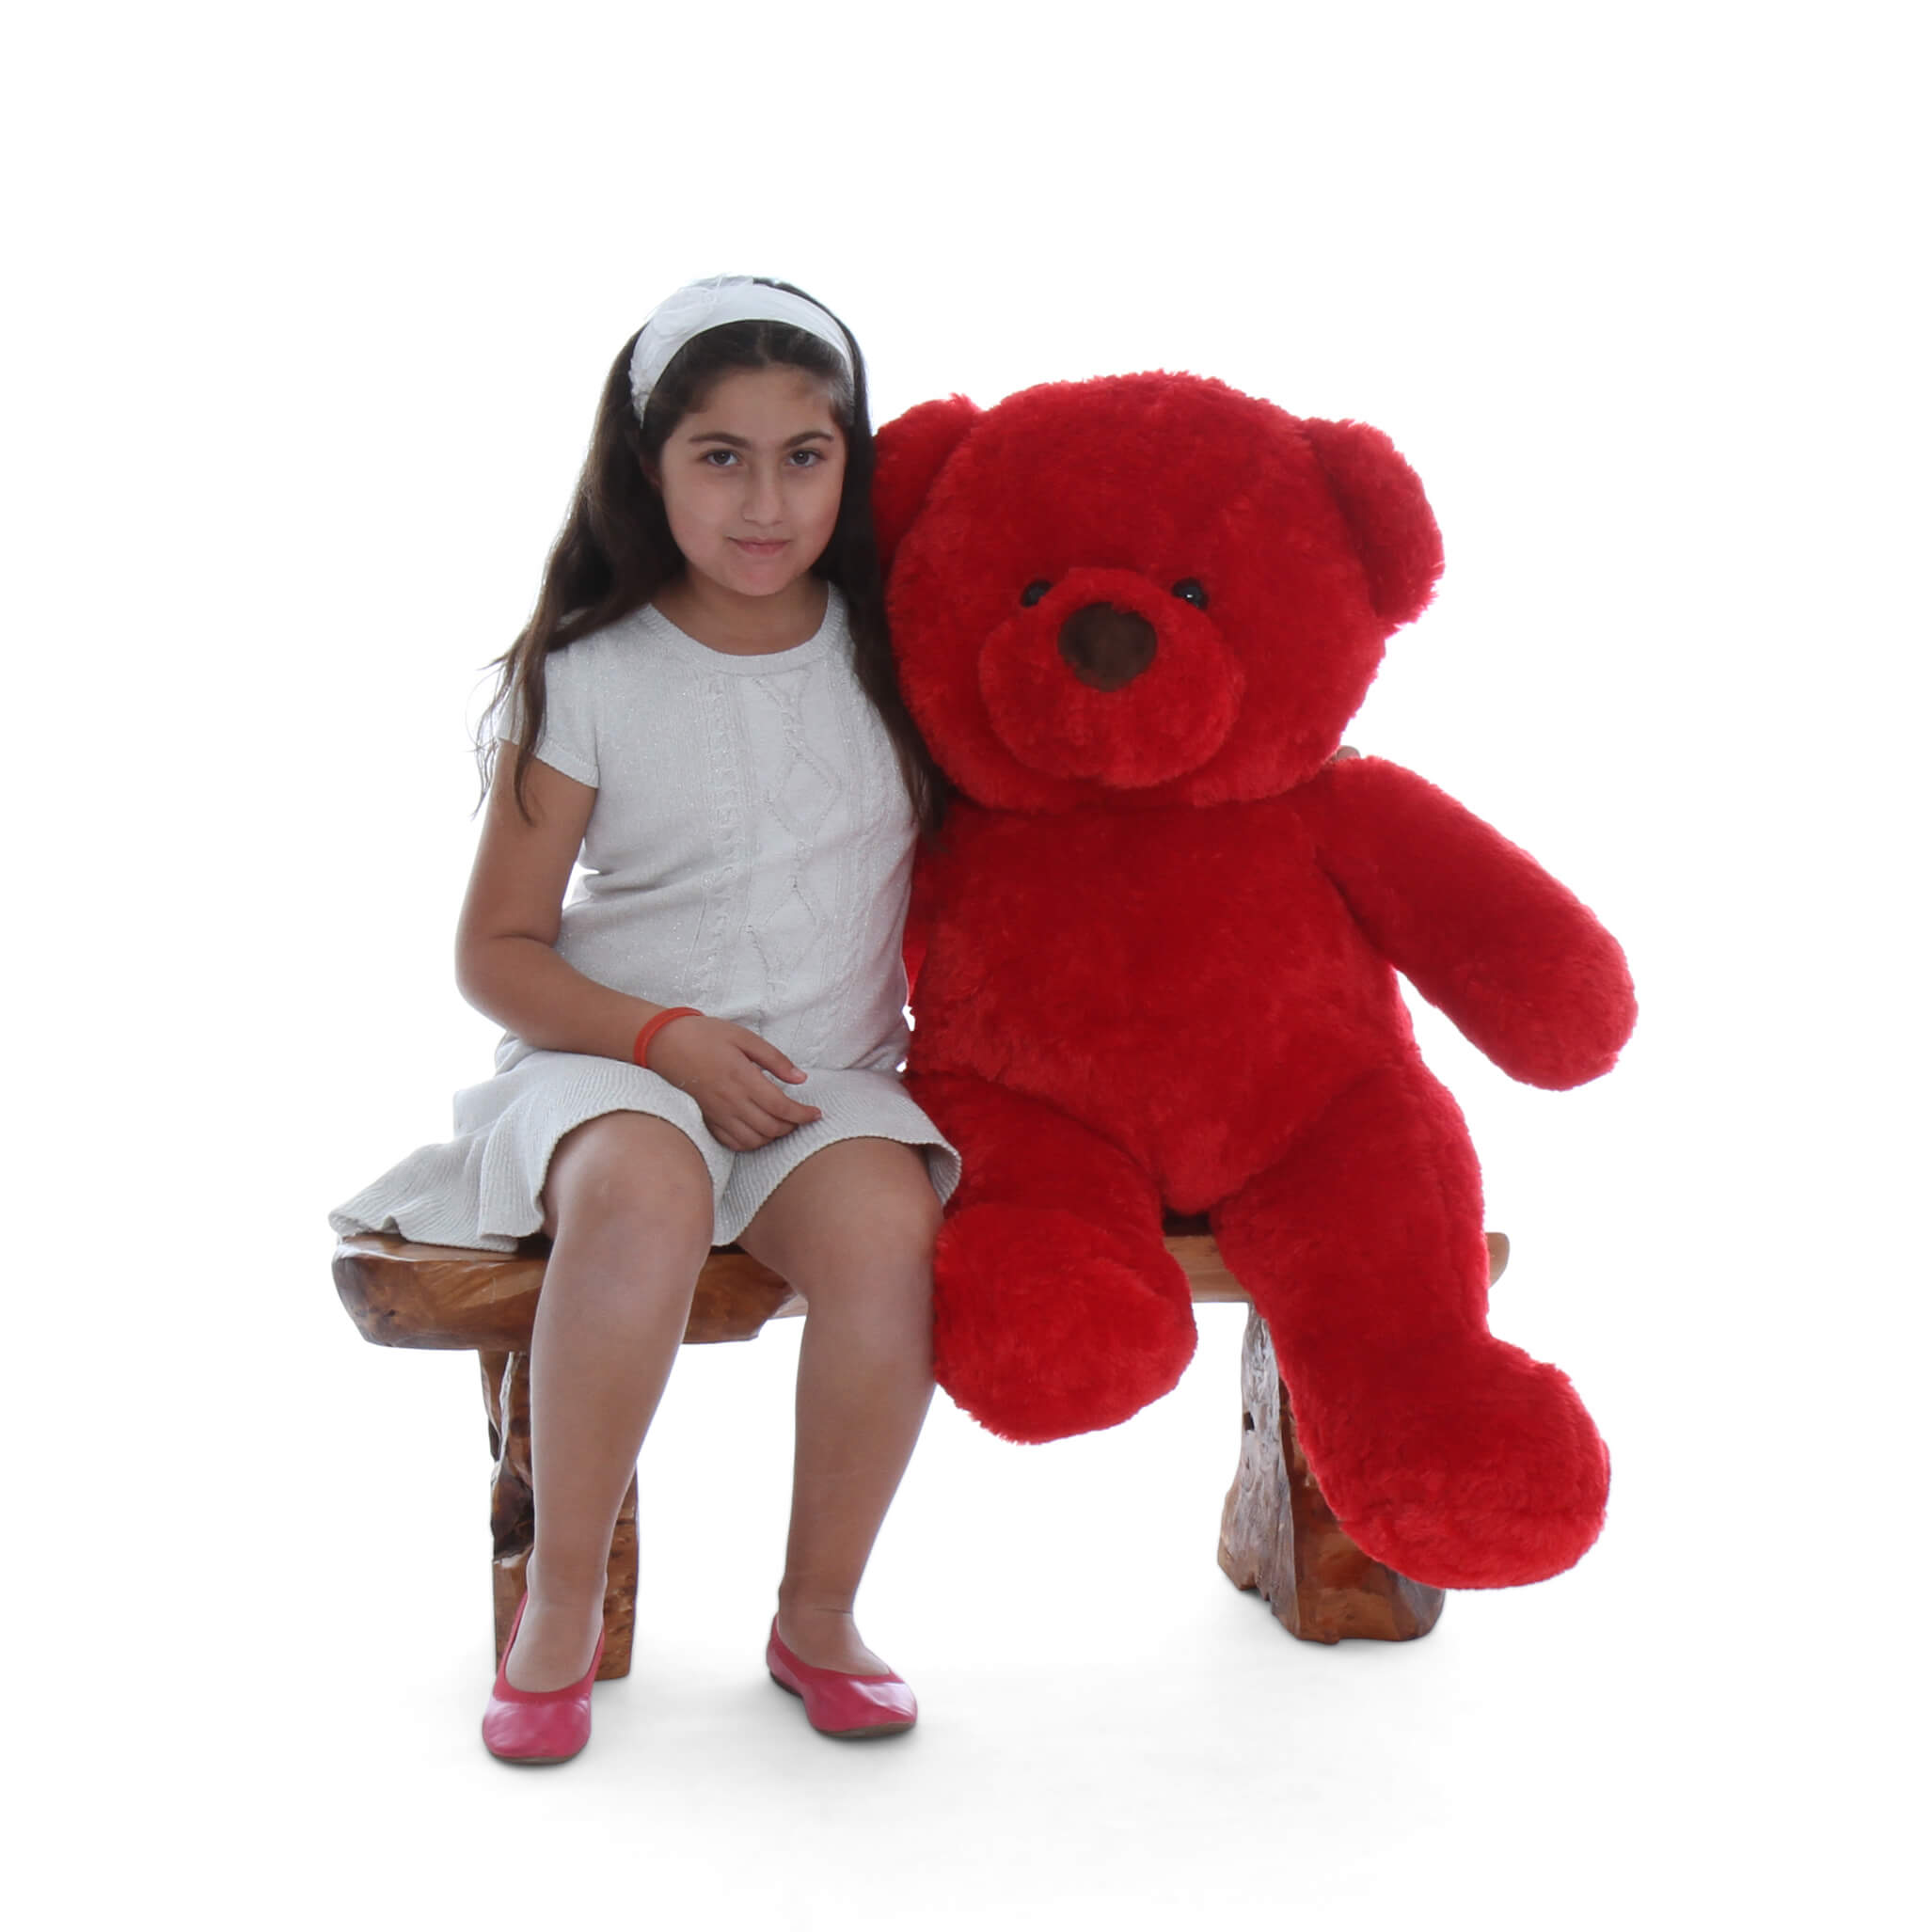 38in-big-riley-red-chubs-adorable-teddy-bear-stuffed-animal-1.jpg